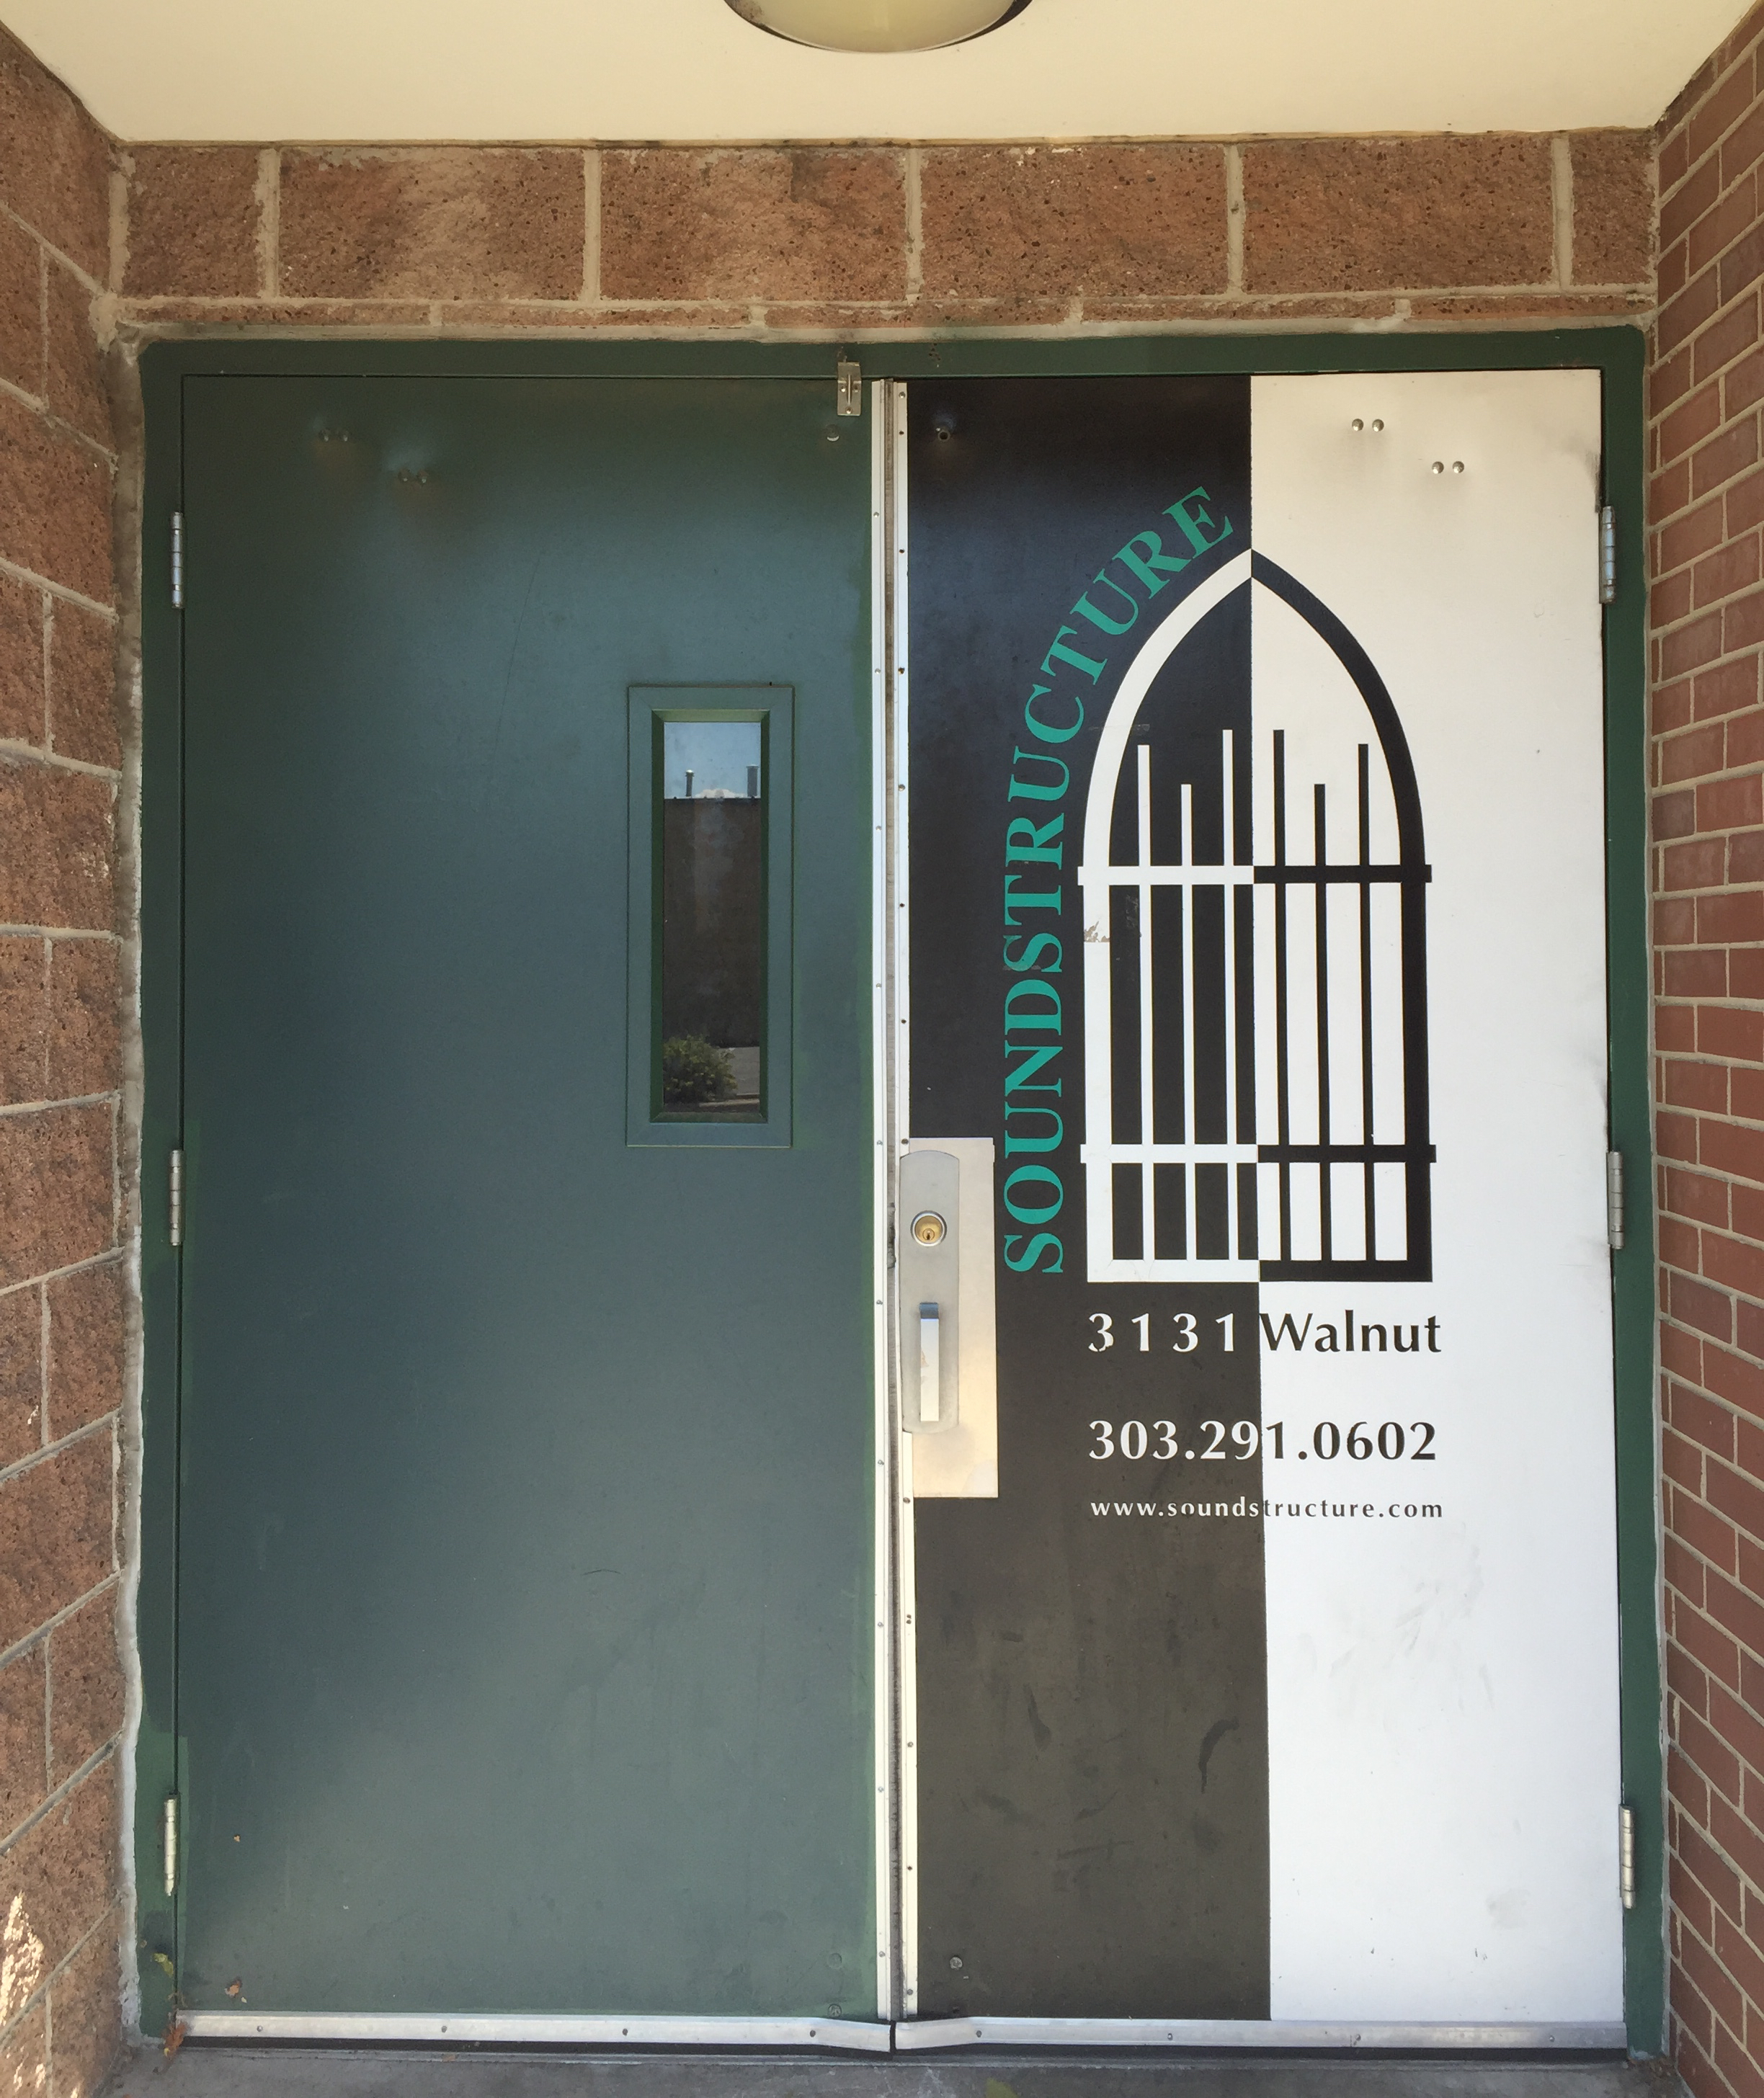 Entrance to Soundstructure Studios (on the side of the Walnut Room building)